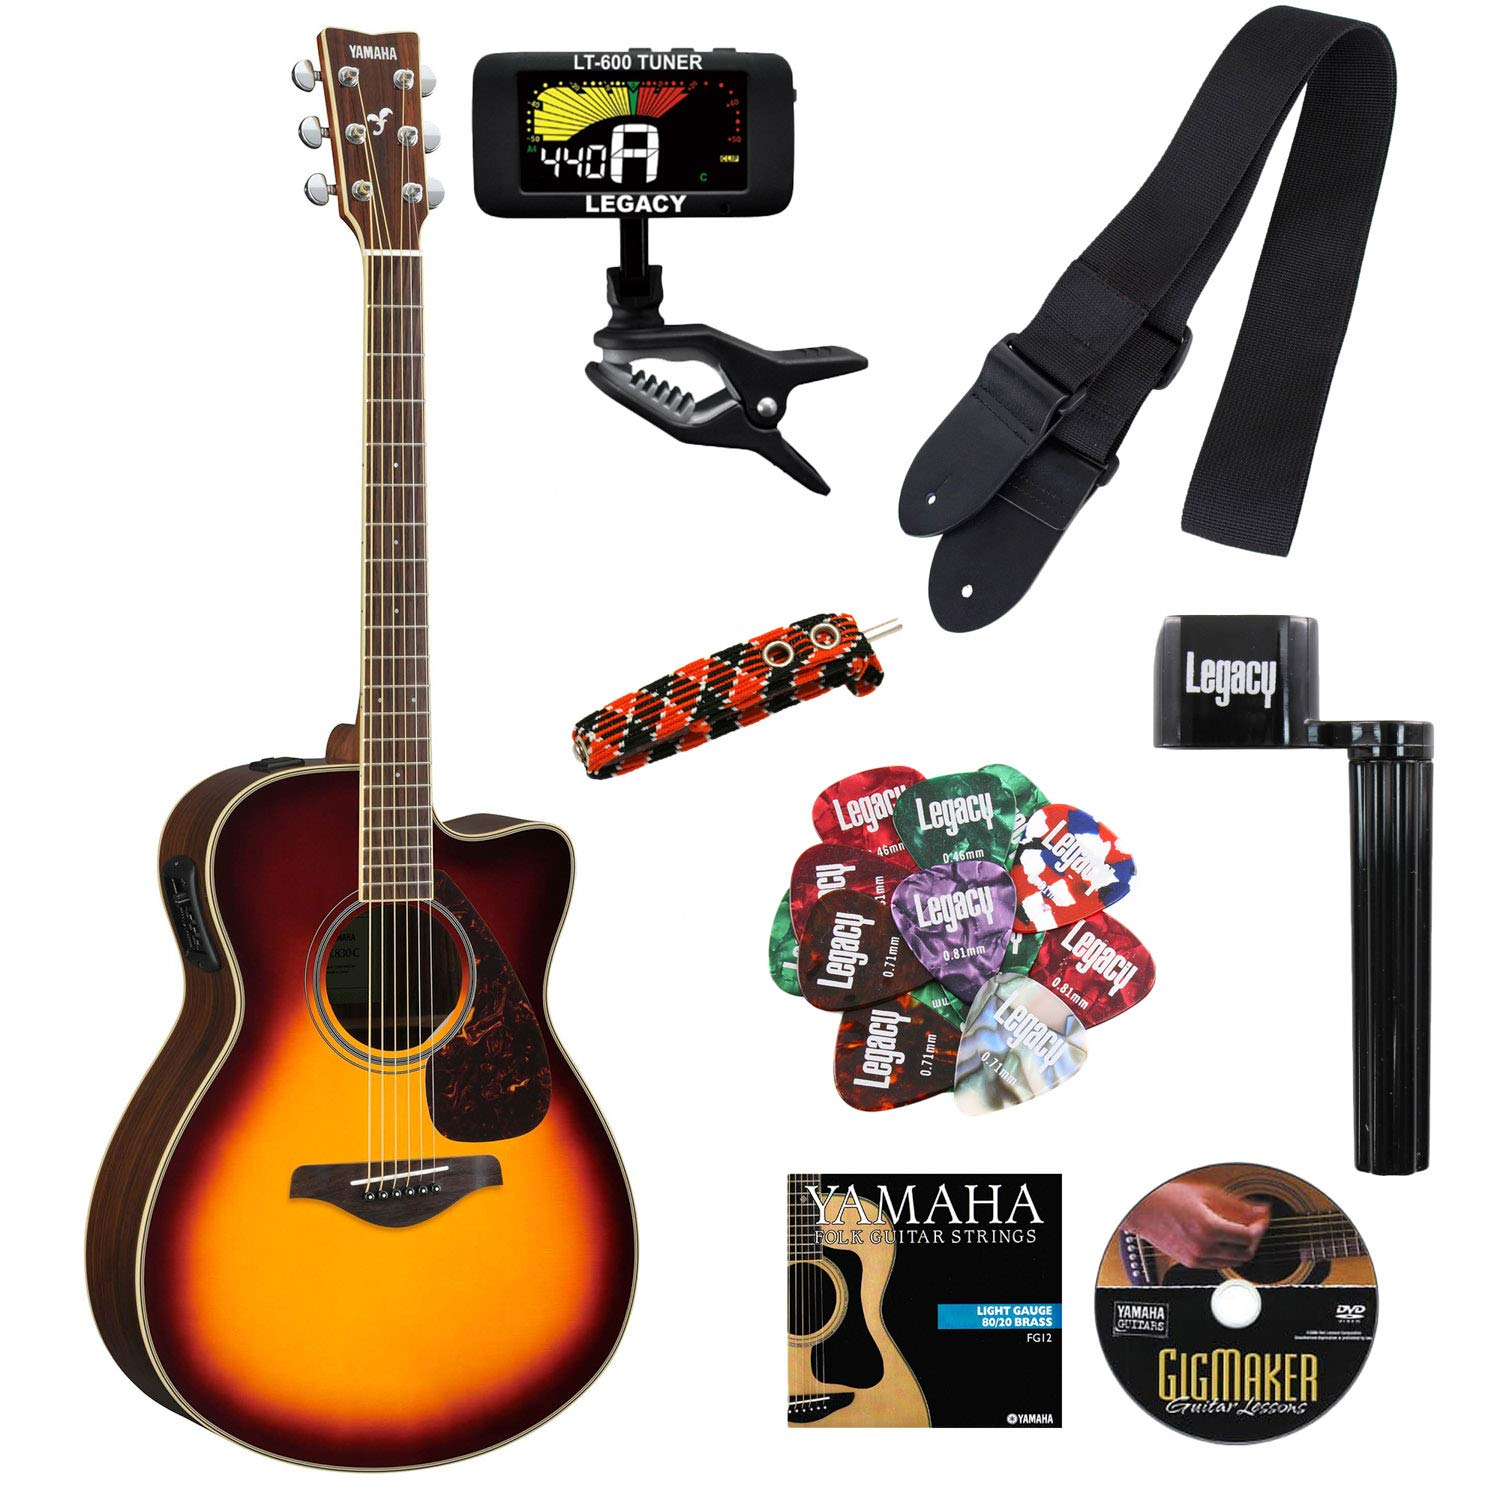 Amazon.com: Yamaha FSX830C Small Body Cutaway Acoustic-Electric Guitar, Solid Top, Rosewood Back and Sides, with Legacy Accessory Bundle: Musical ...